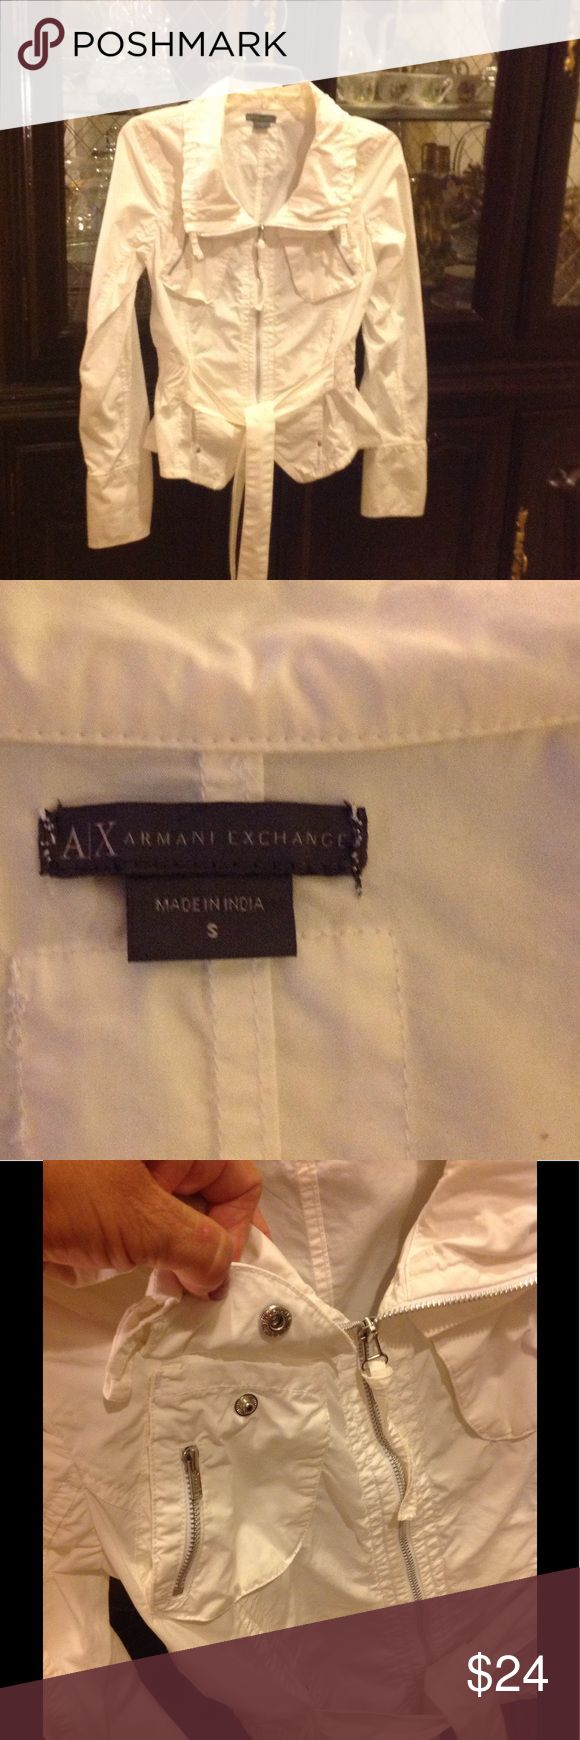 A|X ARMANI EXCHANGE Jacket A|X ARMANI EXCHANGE Beautiful Jacket with so many beautiful details. It has two pockets with snap boutons and zippers, and two front invisible pockets in the front. It has elastic waist in the back and belt in the front. The sleeves has details too the cuff can be folded. Used once, in excellent condition. A|X ARMANI EXCHANGE Jackets & Coats Utility Jackets